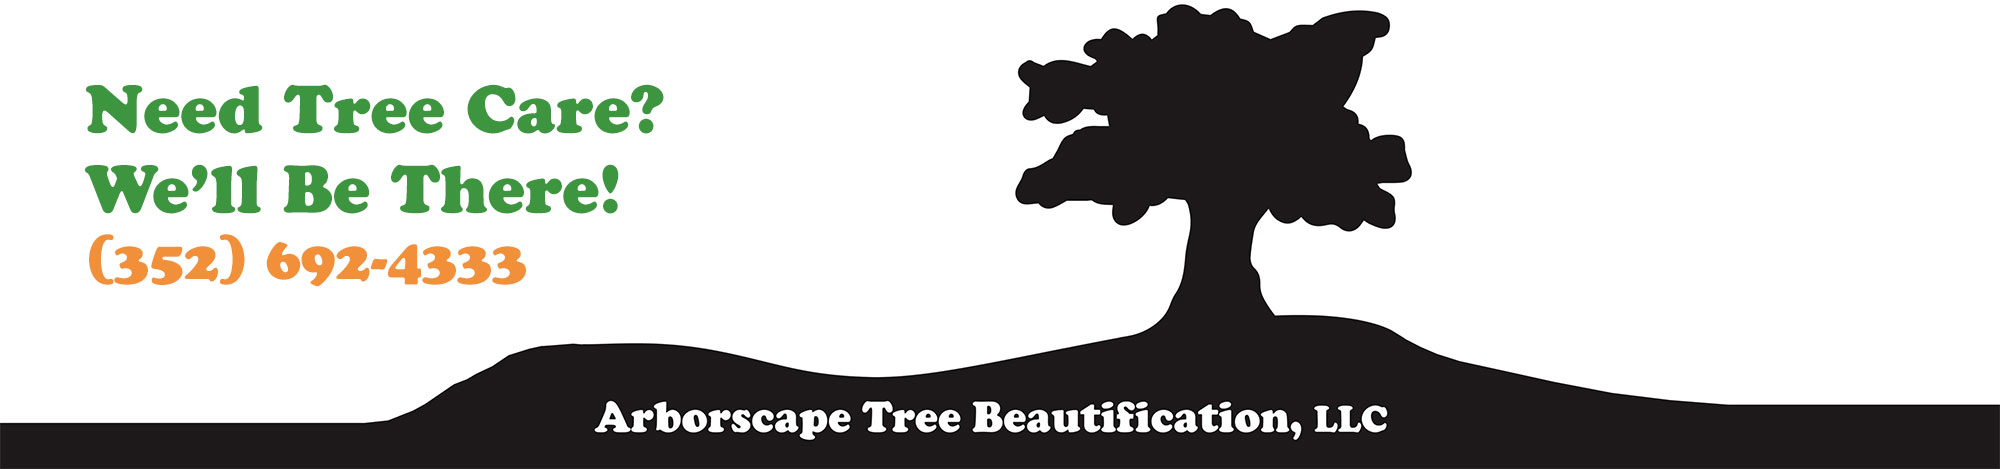 Arborscape Tree Beautification LLC